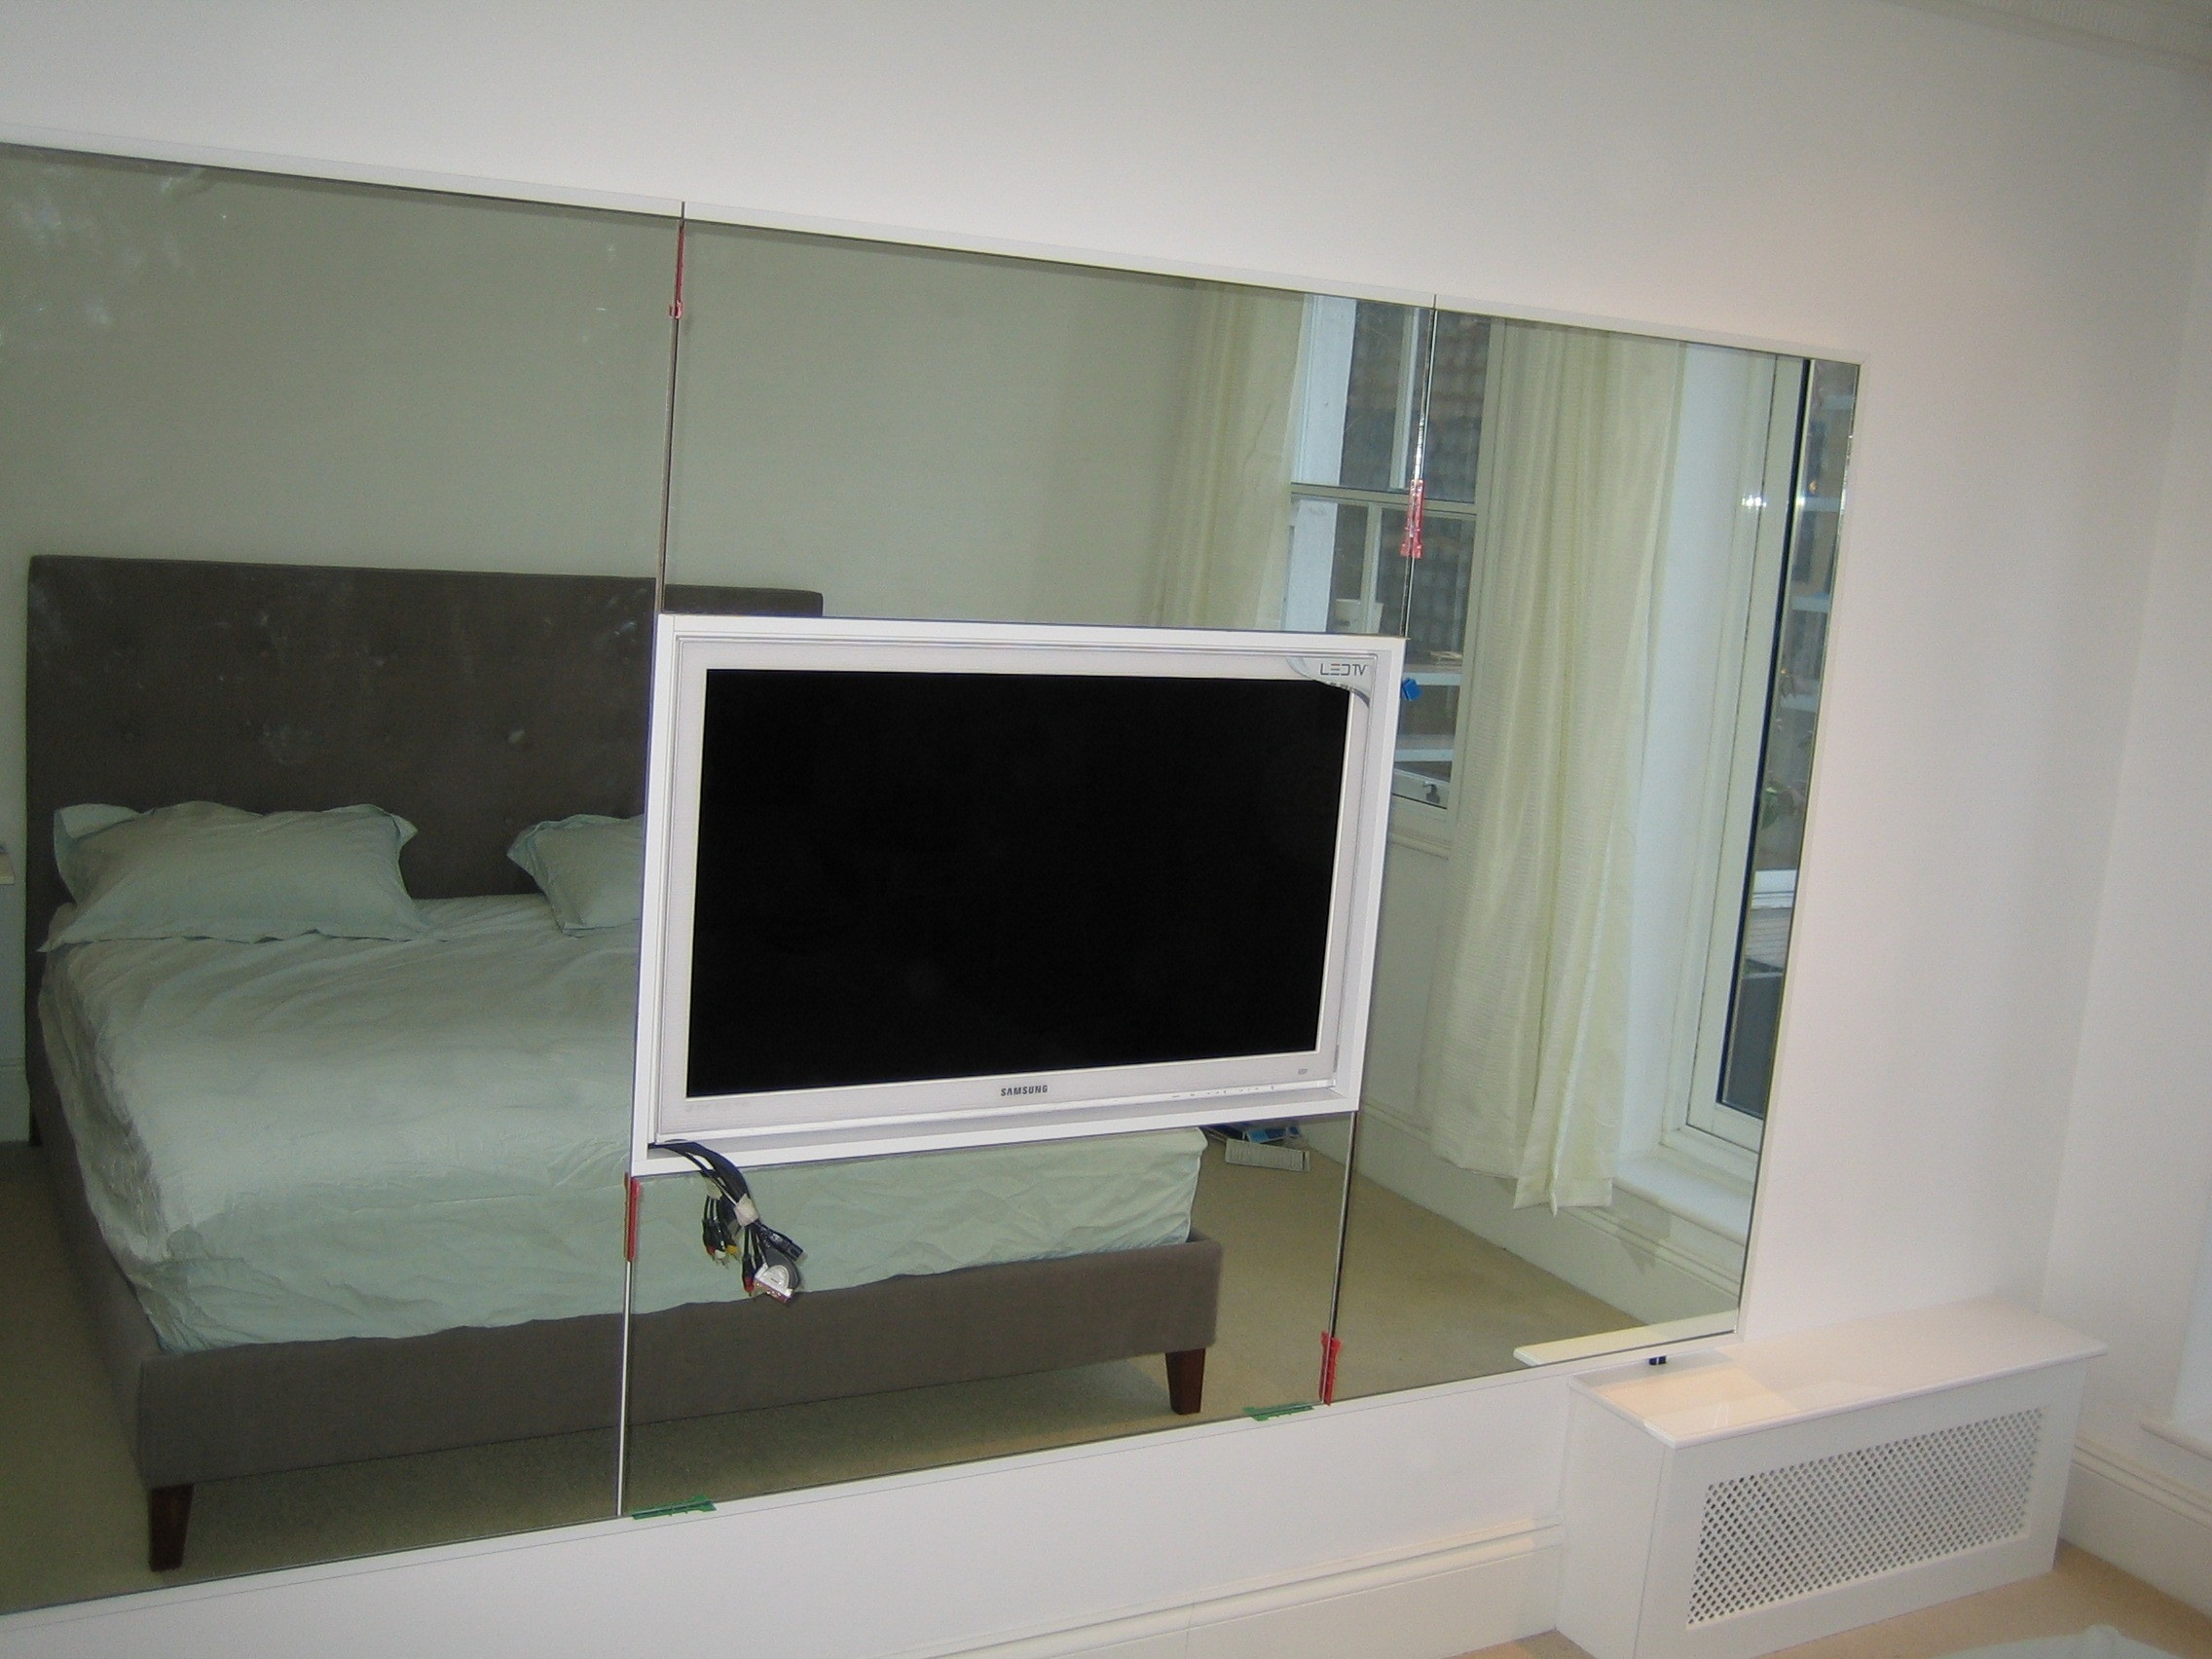 Mirror Tv Wall Cabinet Mirror Tv Wall Cabinet bedrooms led tv cabinet for bedroom tv stand corner flat screen 2272 X 1704